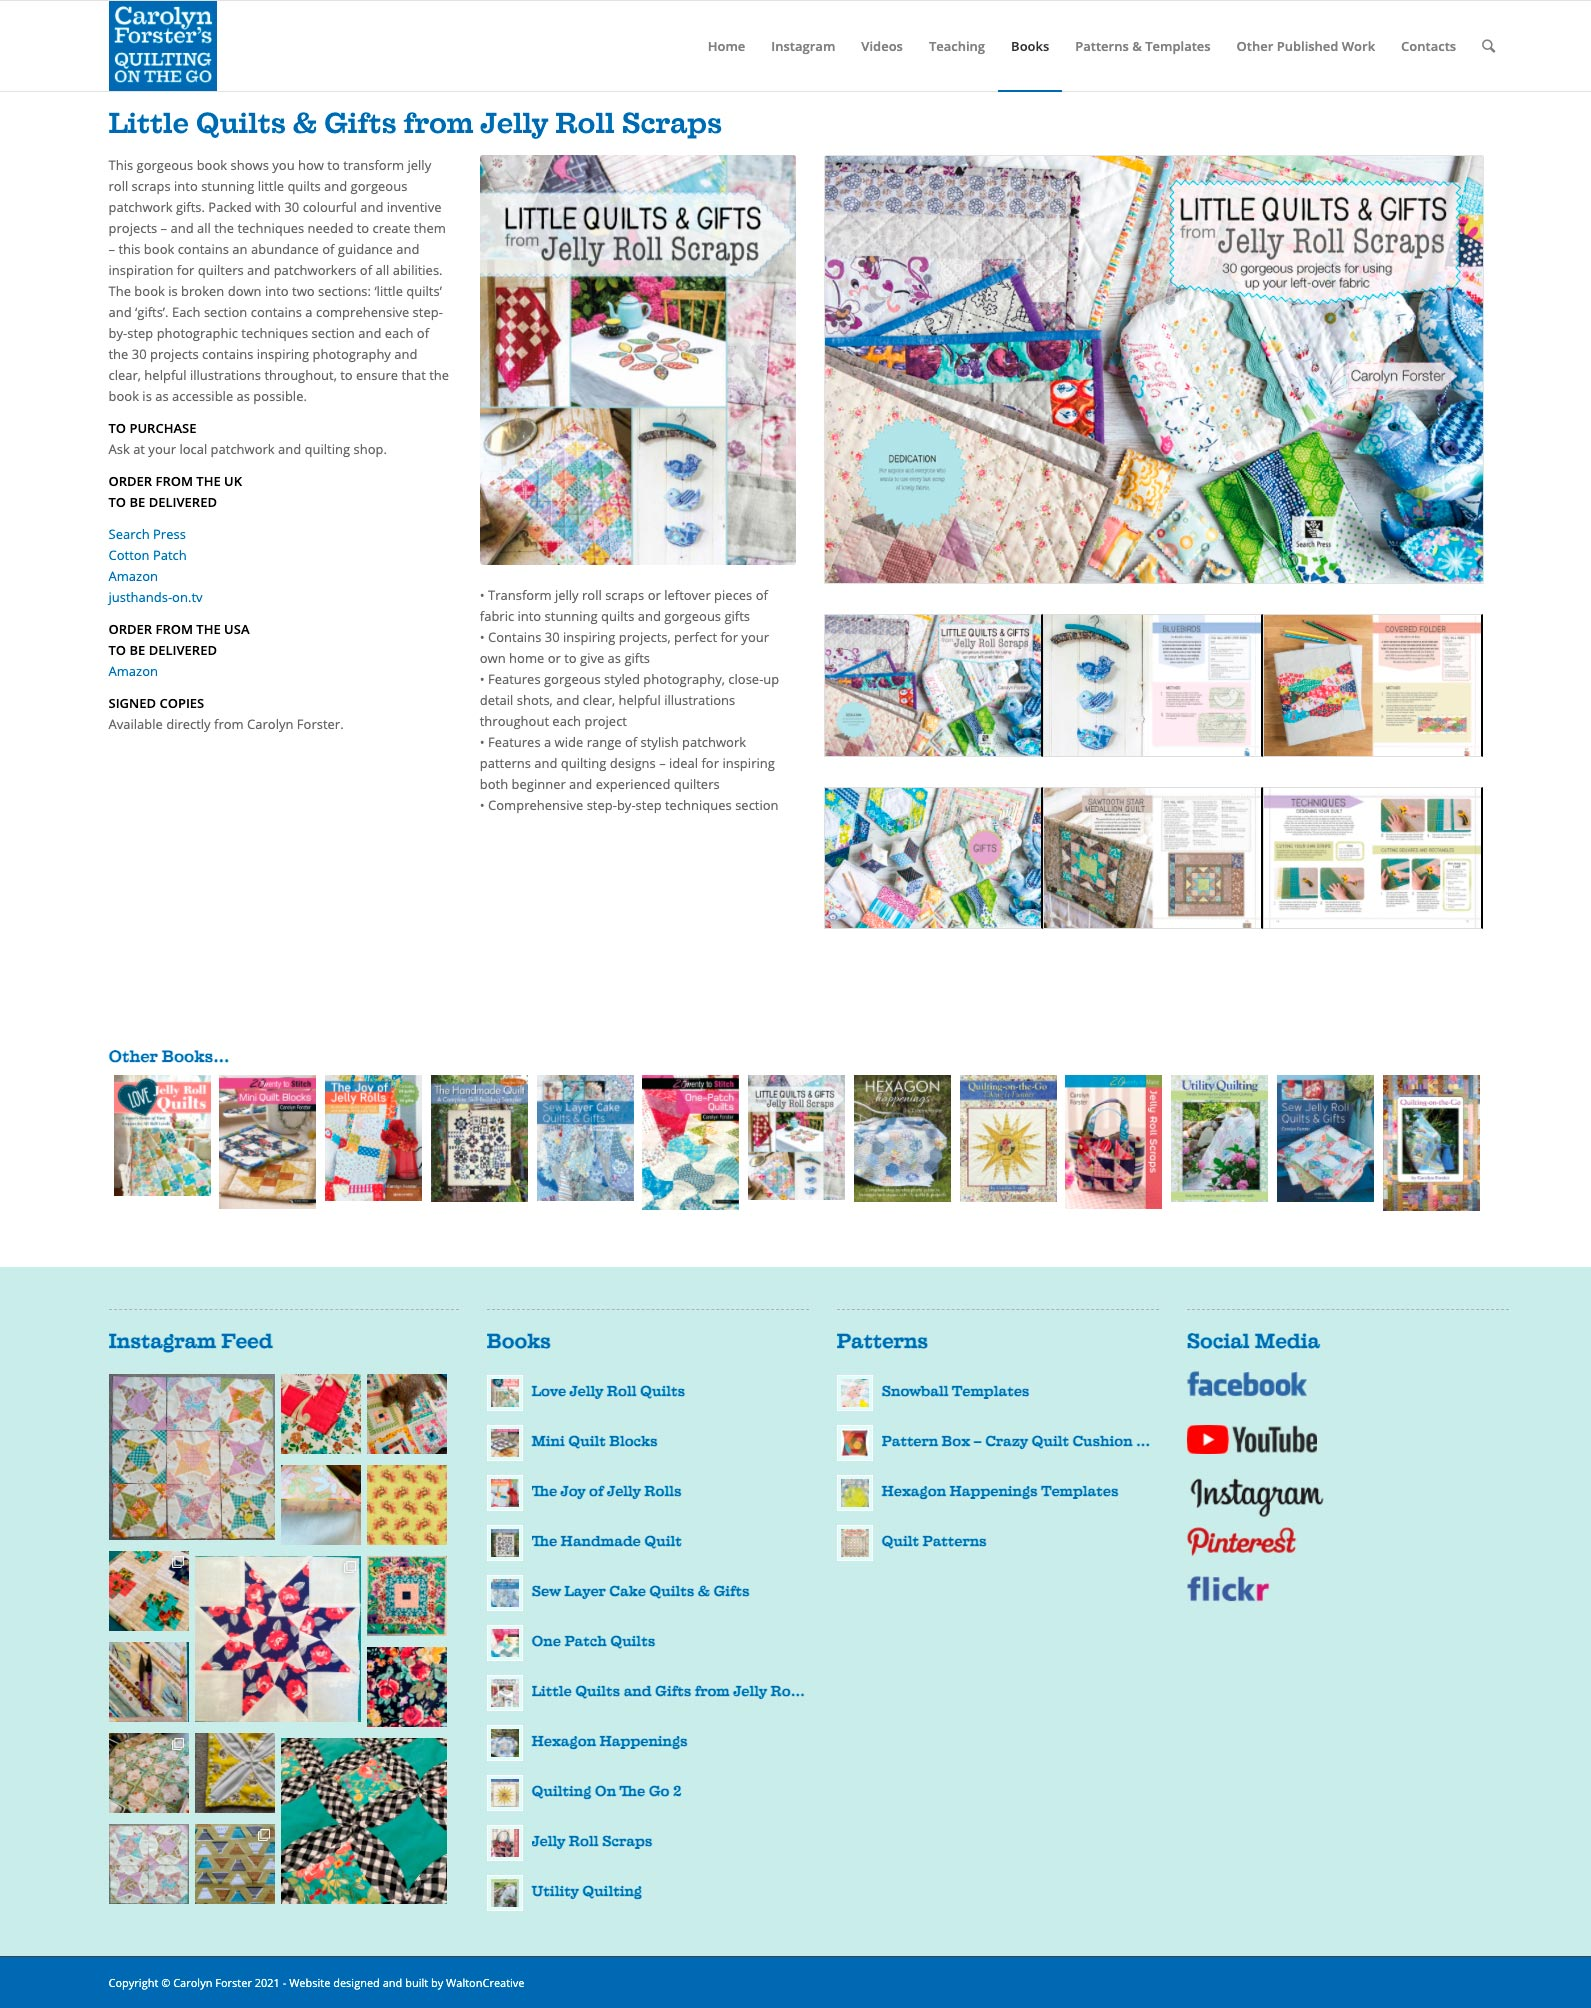 Carolyn Forster's Website Design 9 Little Quilts and Gifts from Jelly Roll Scraps